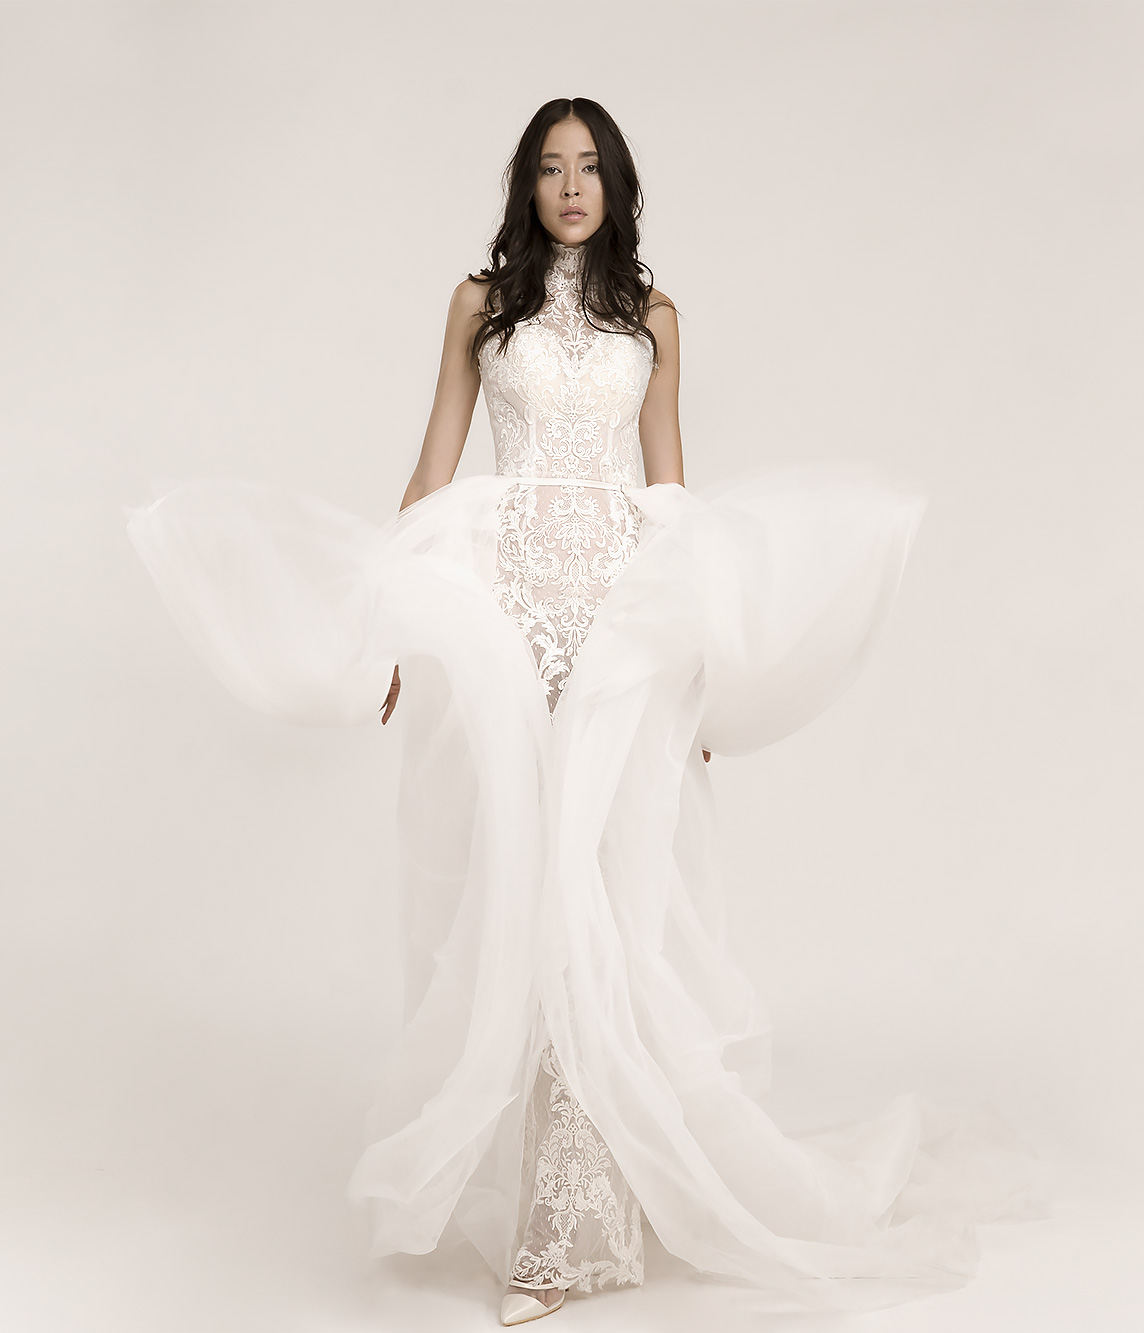 the best european wedding dresses brand name for american bridal fashion dealers